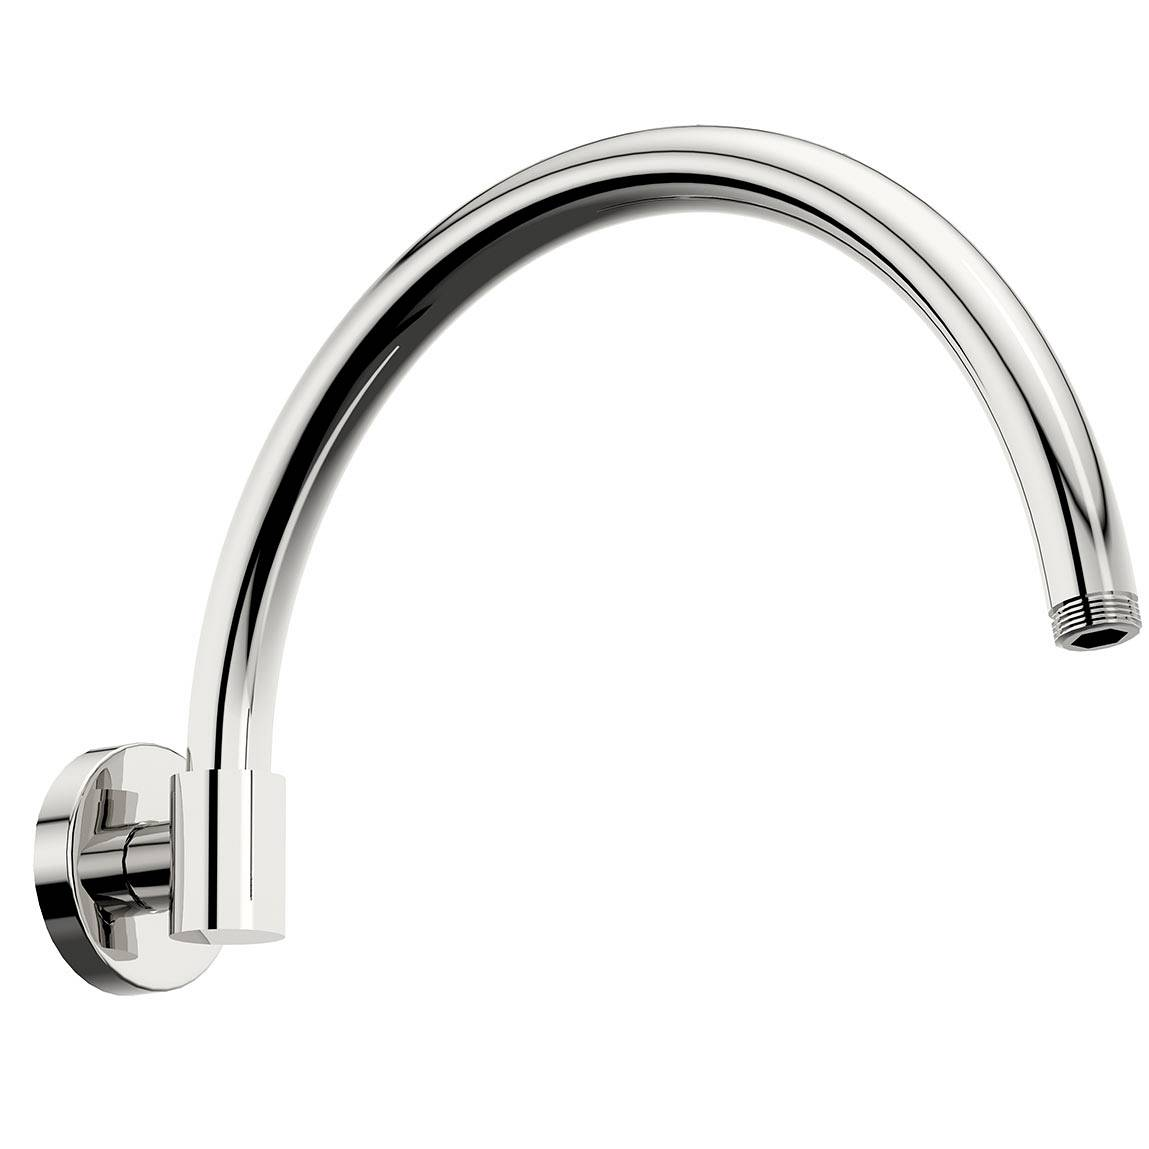 Image of Traditional Wall Shower Arm 310mm